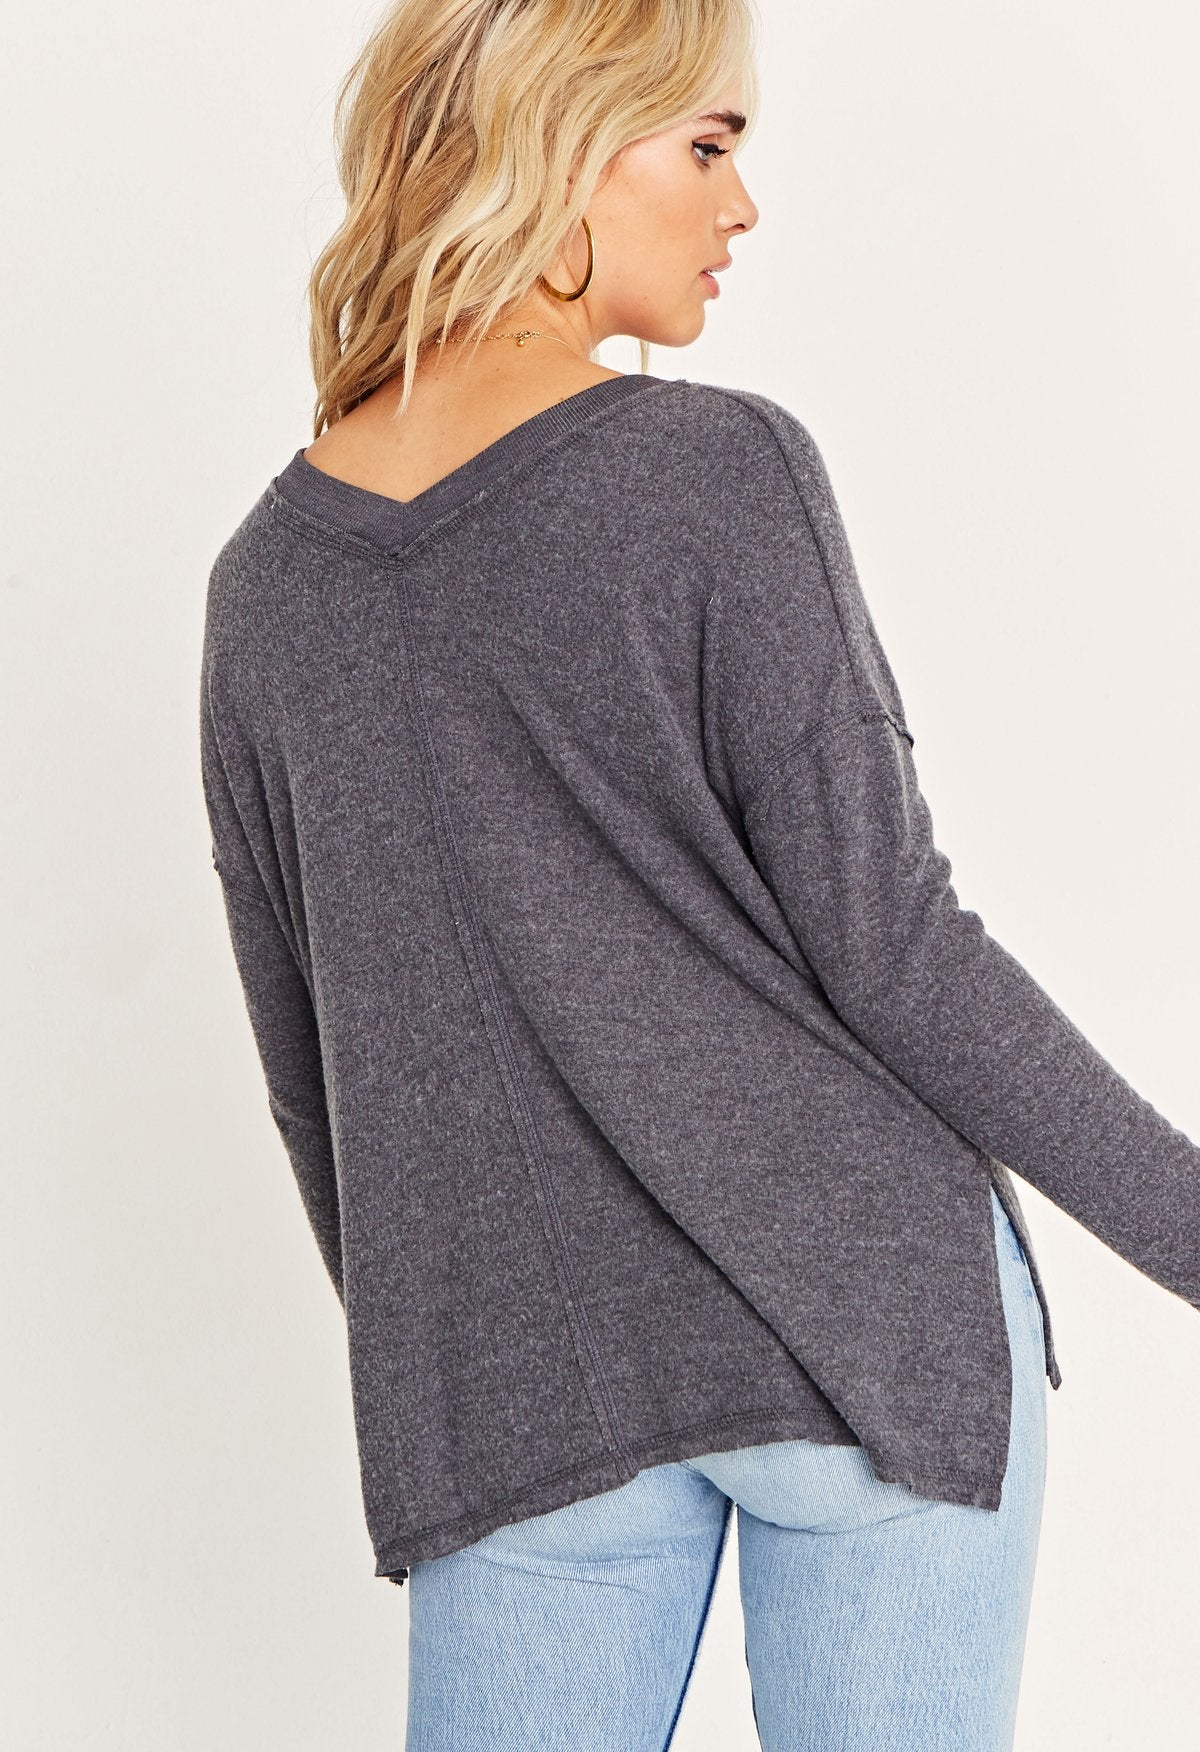 Charcoal Grey Long Sleeve V-Neck Pullover